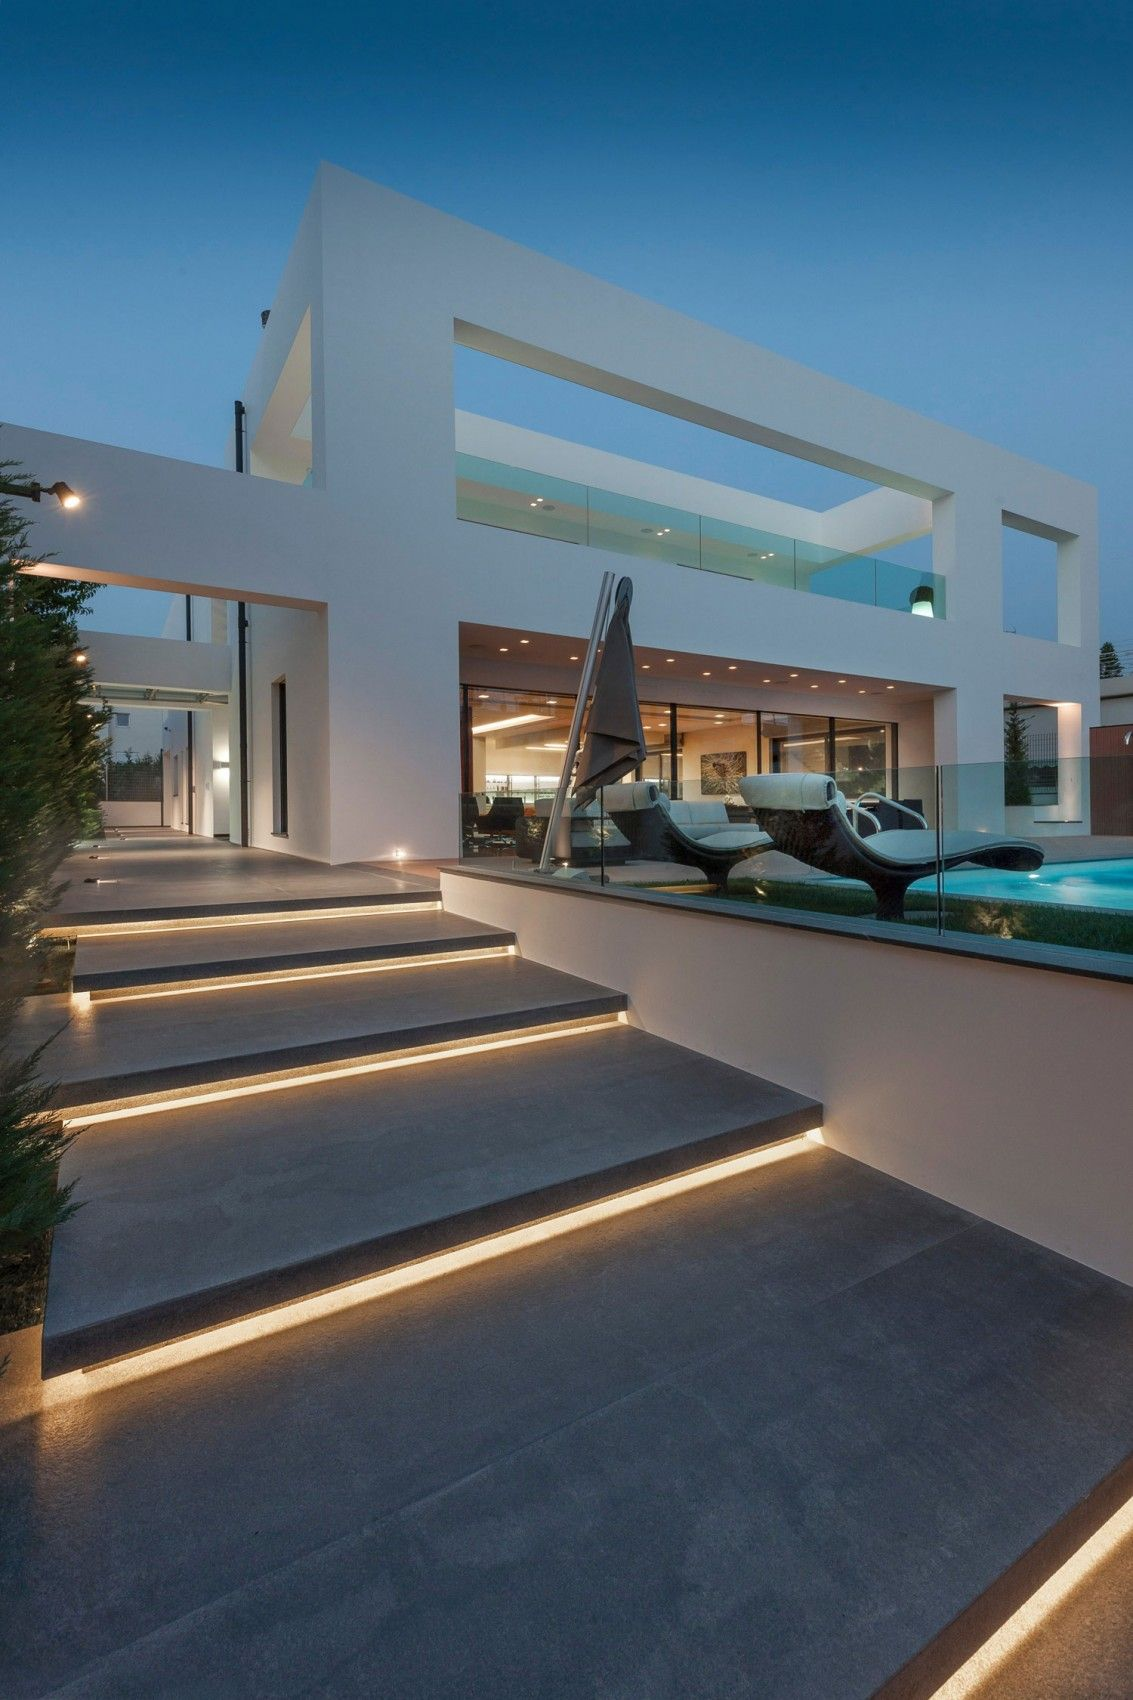 Residence In Glyfada By Dolihos Architects 18 Homedsgn Architecture House Exterior Architecture House